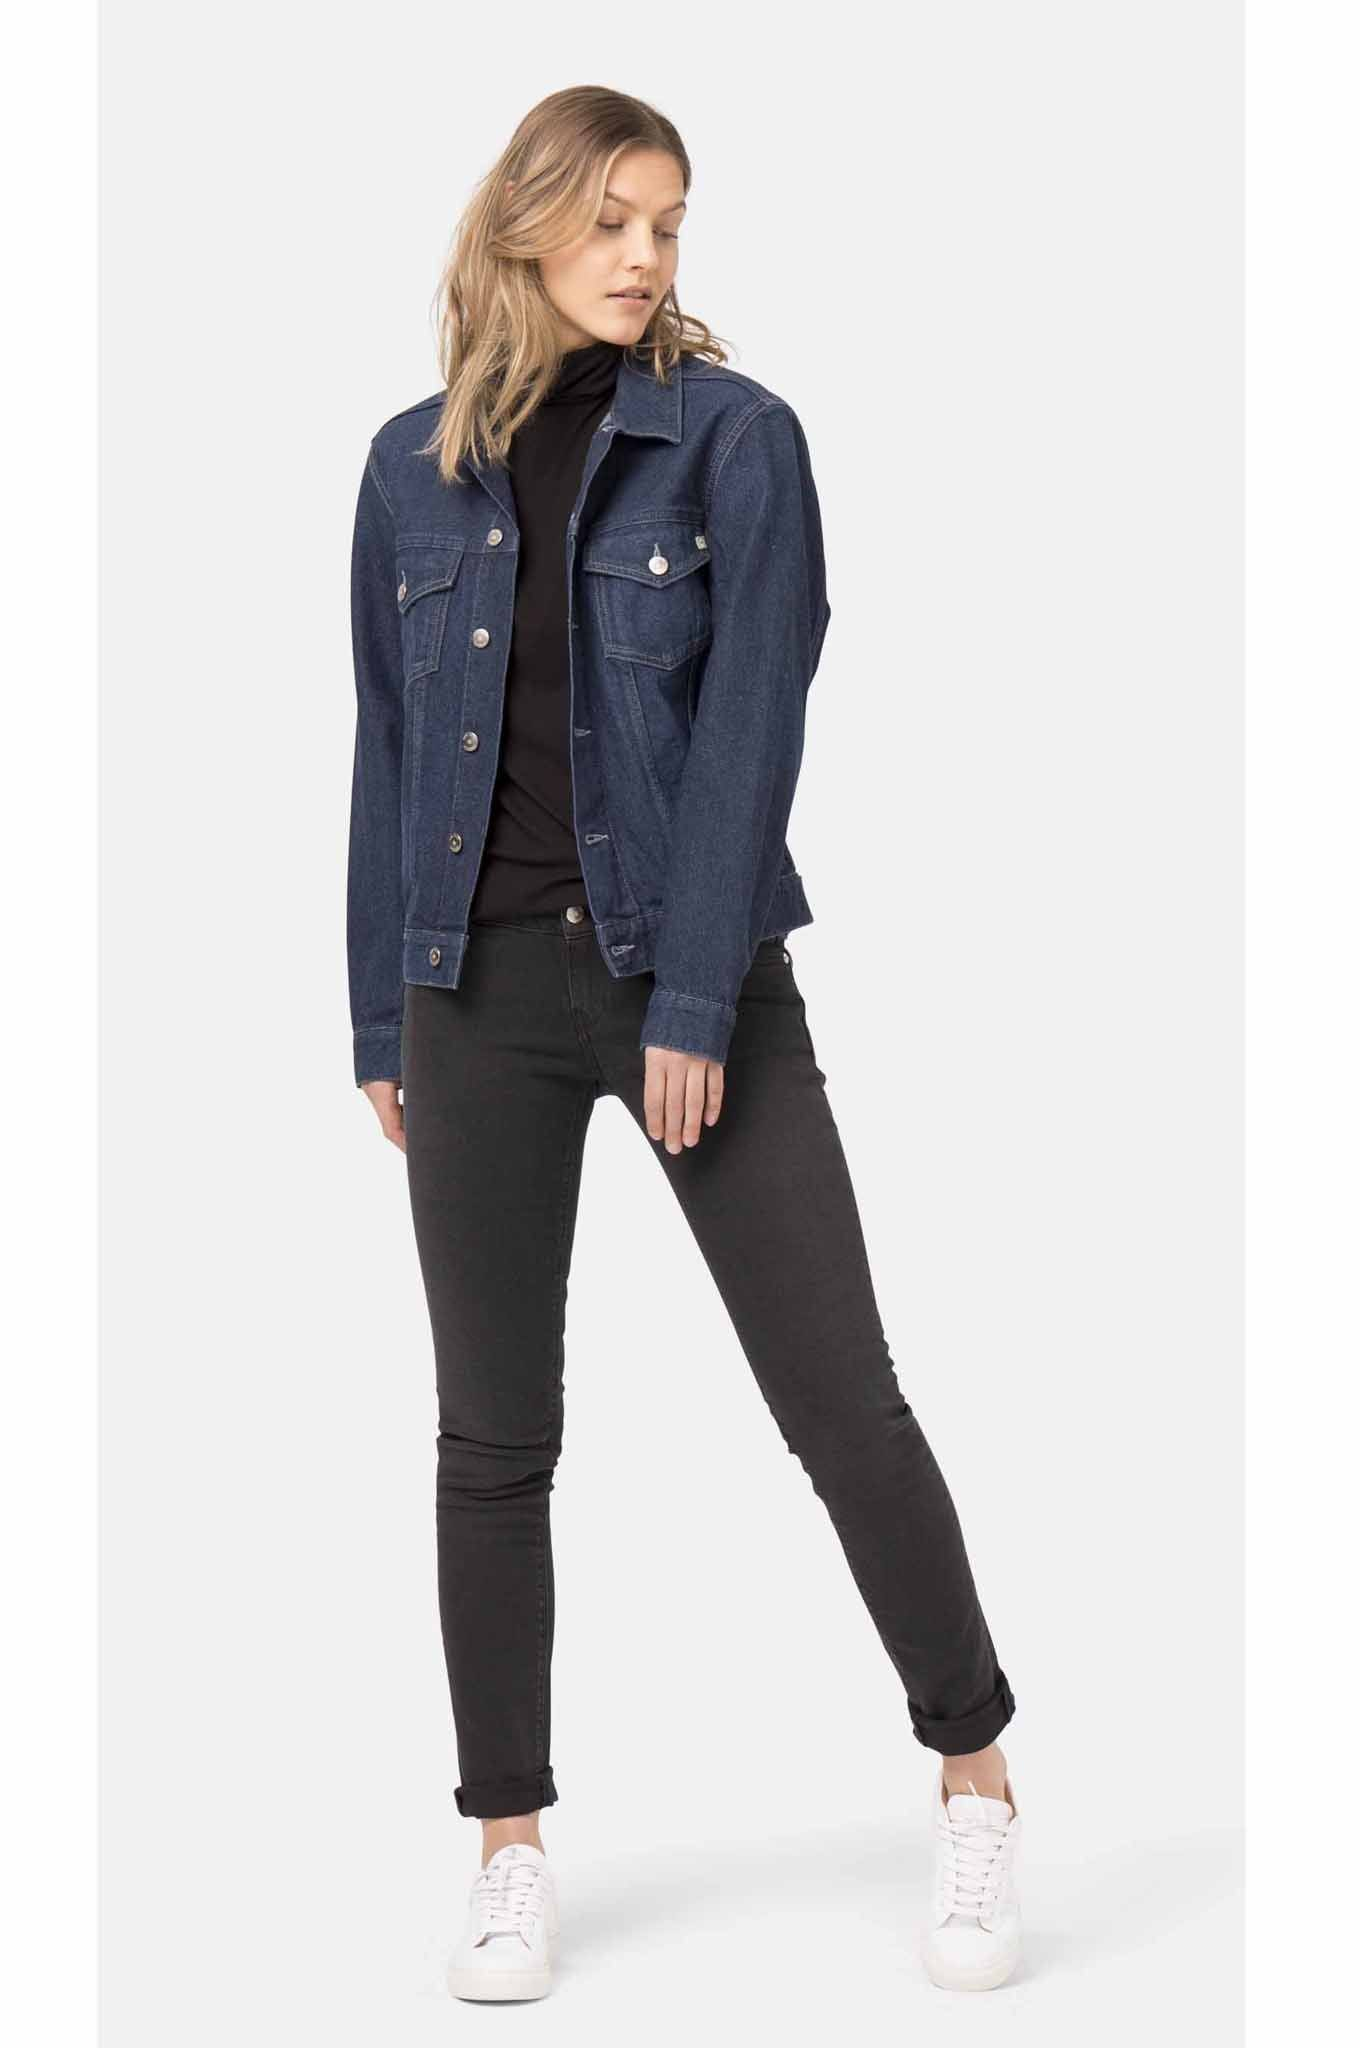 d338c59732 Jeans - LILLY Womens Skinny Black Jeans By MUD